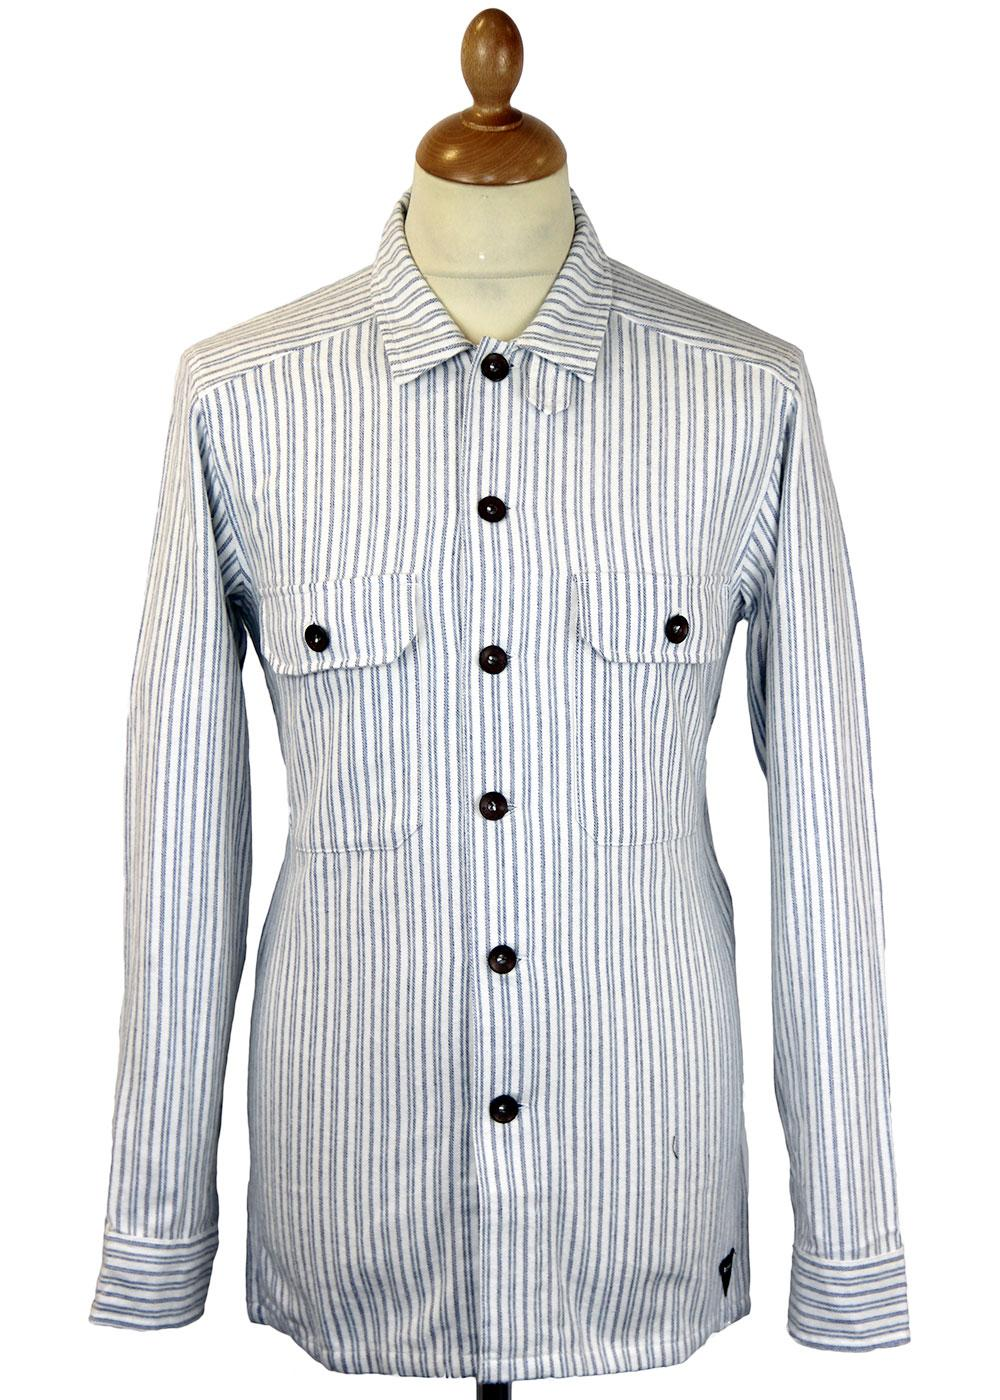 REALM & EMPIRE Original Stripe Gunner Overshirt